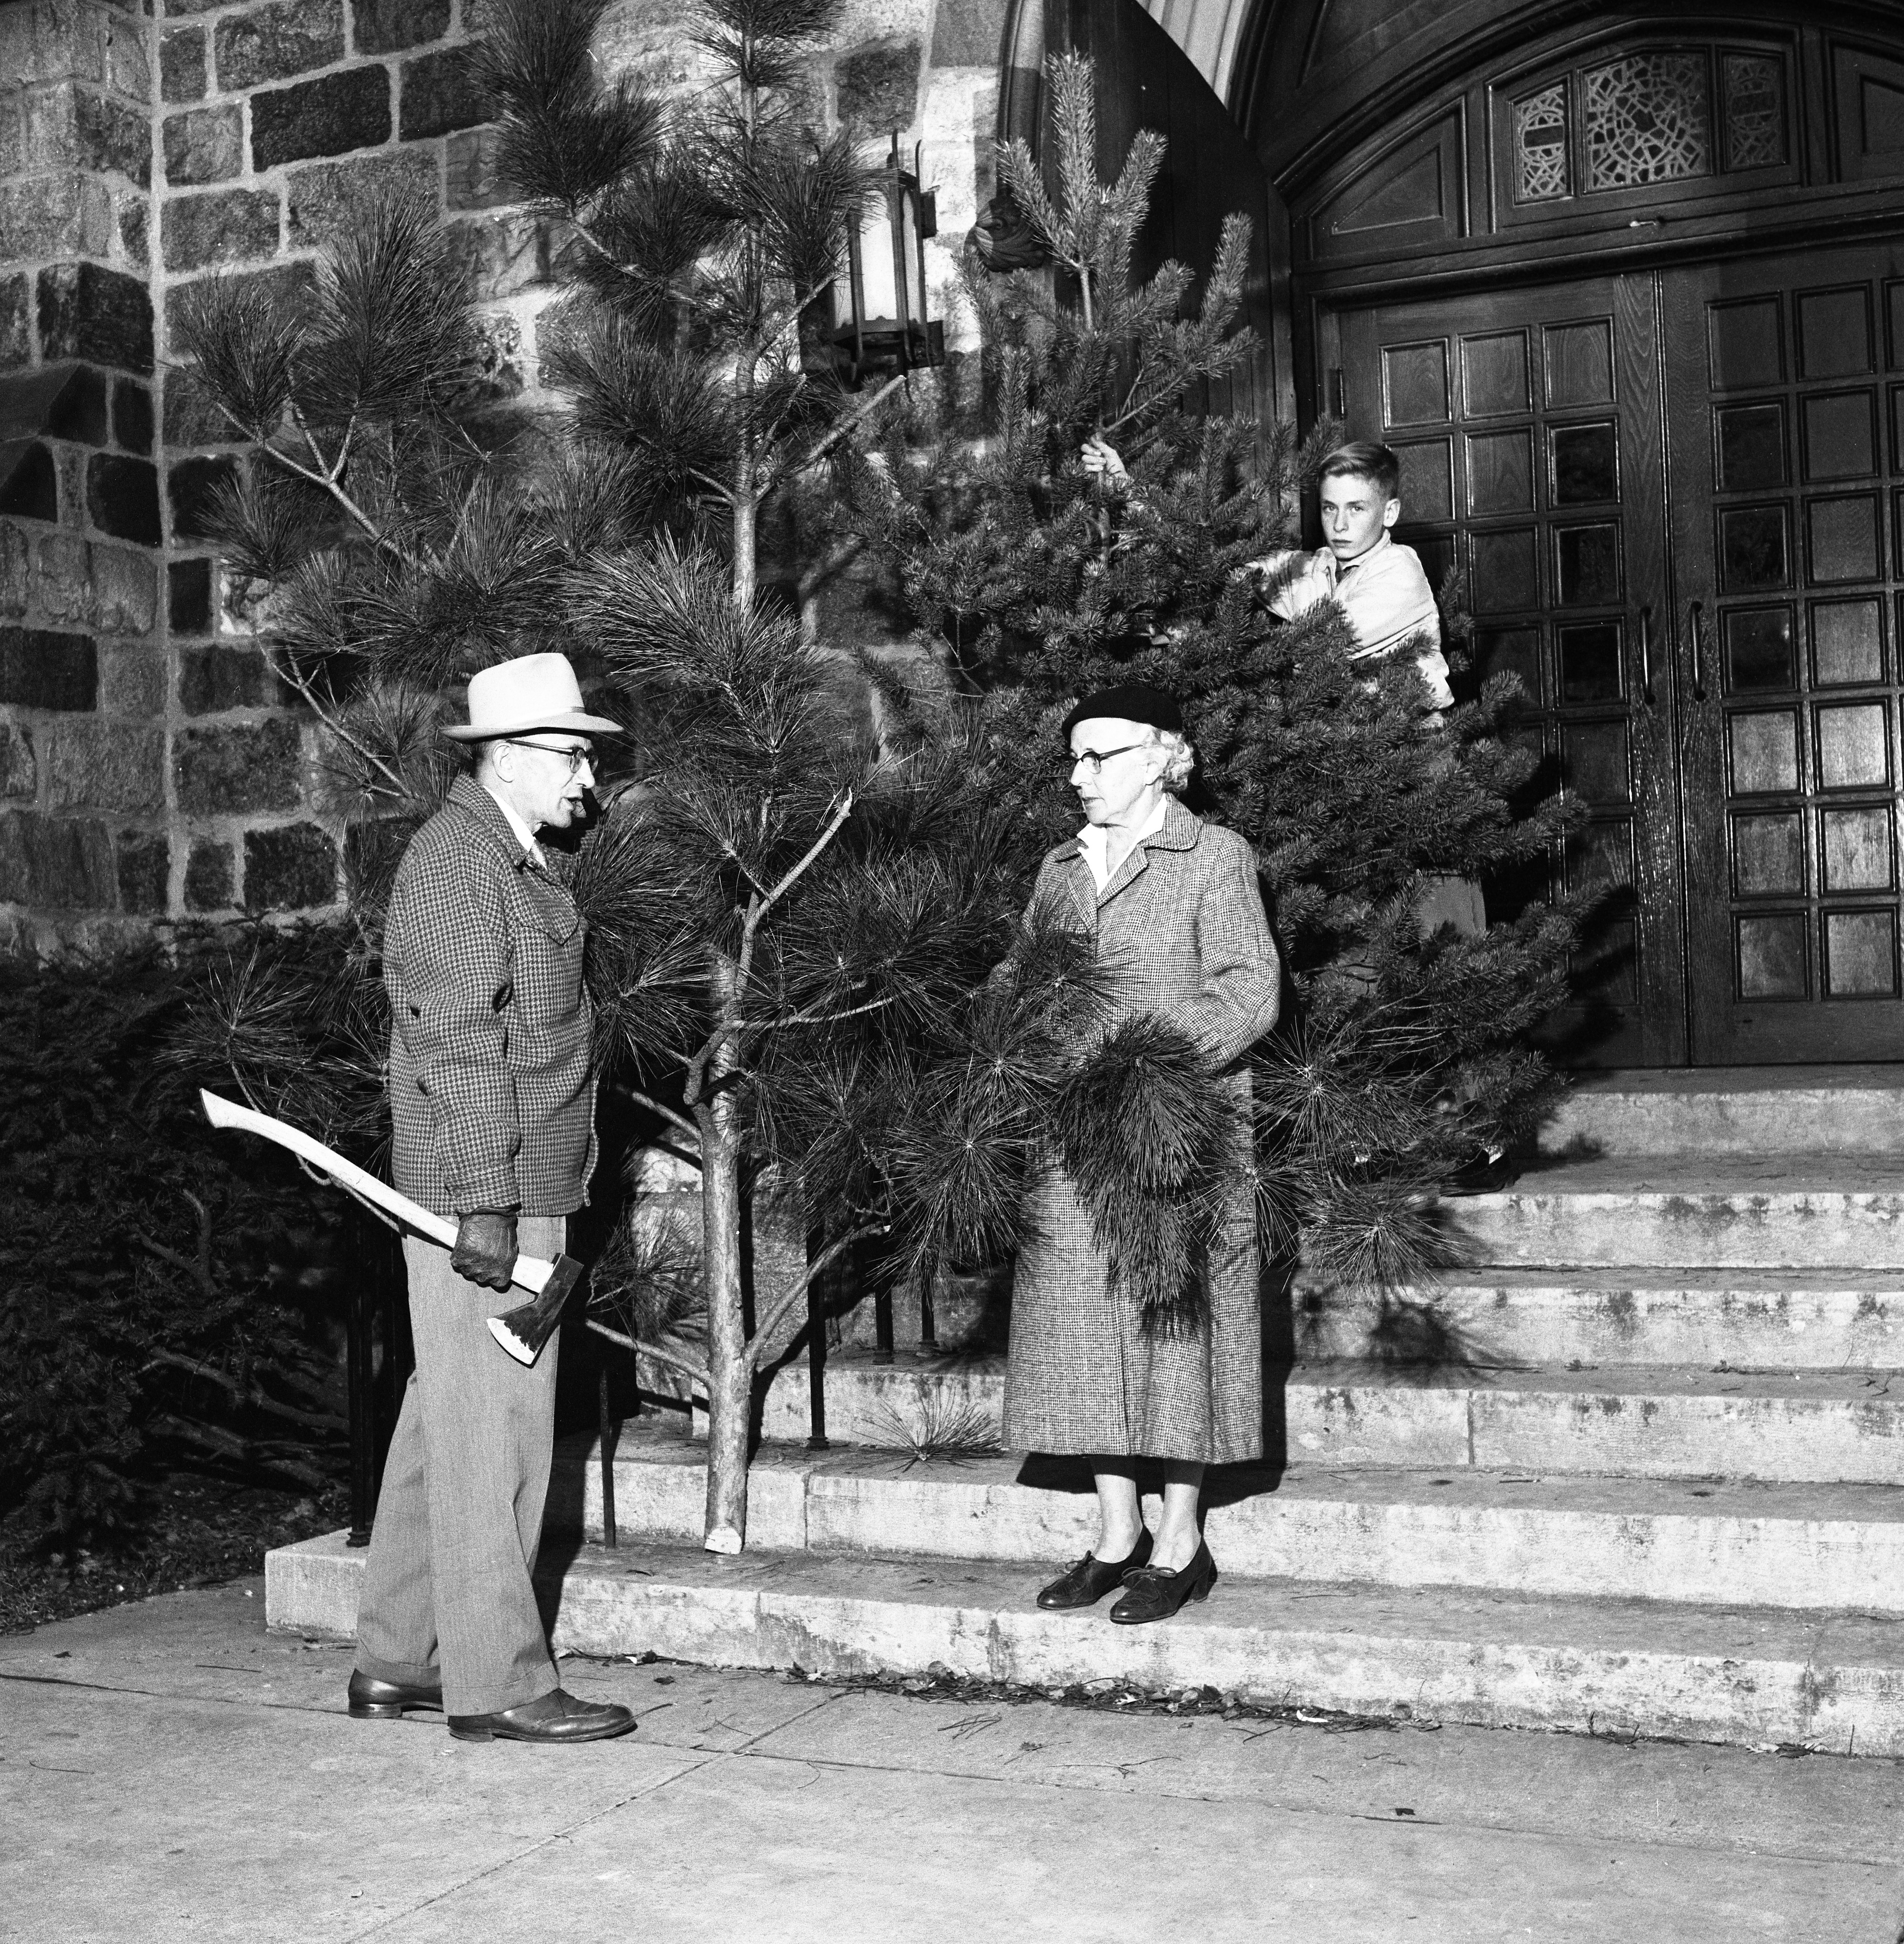 St. Andrew's Episcopal Church Parish Hall To Be Decorated With Christmas Trees, November 1960 image